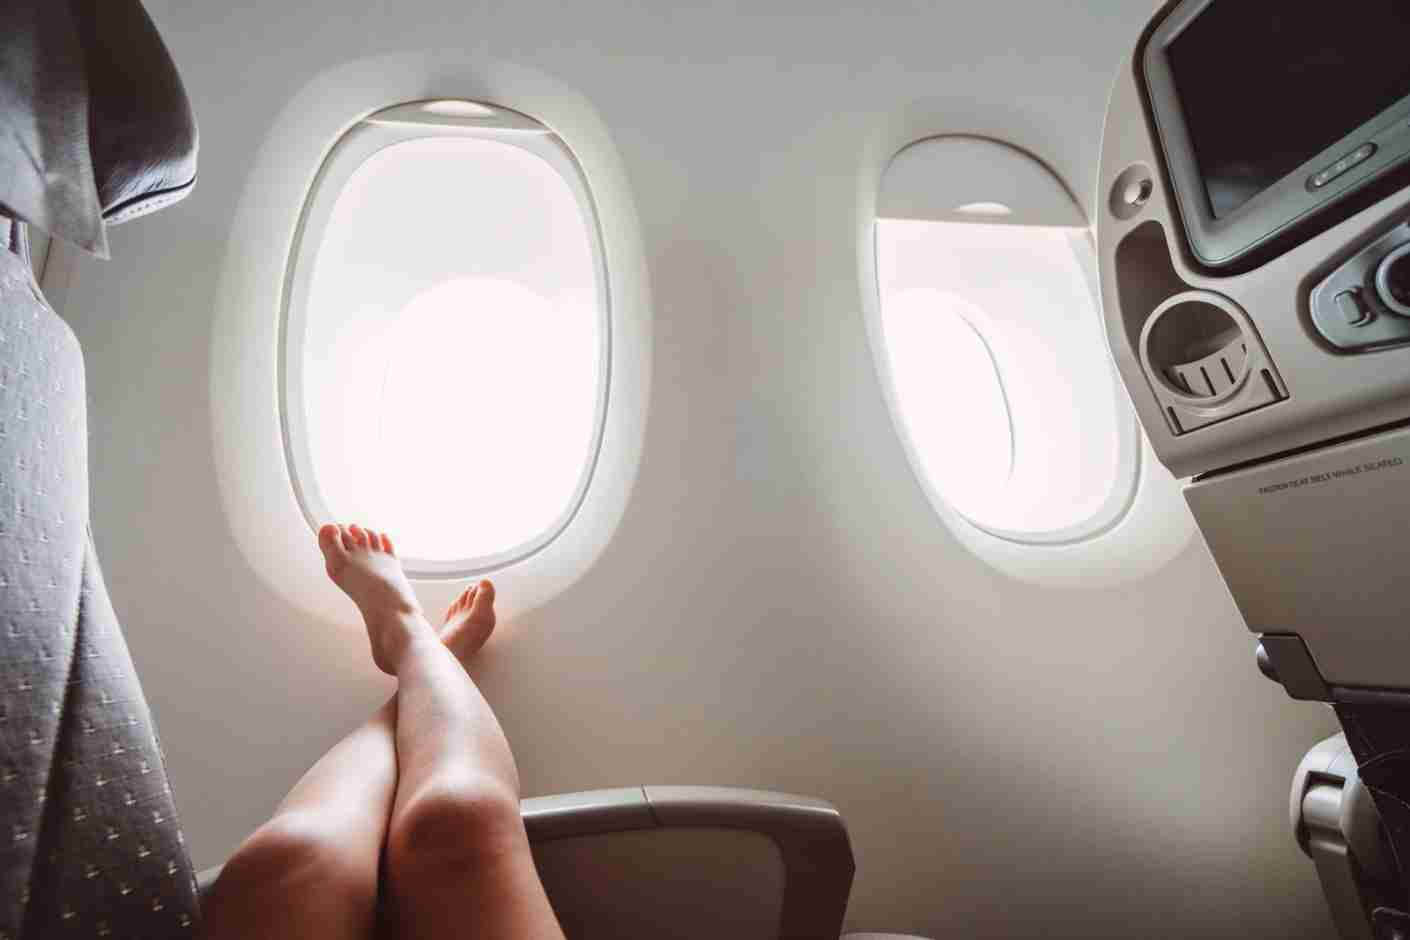 Sitting in the same position for a long period of time, like on an airplane, can be detrimental to your health. (Photo by Tang Ming Tung / Getty Images)